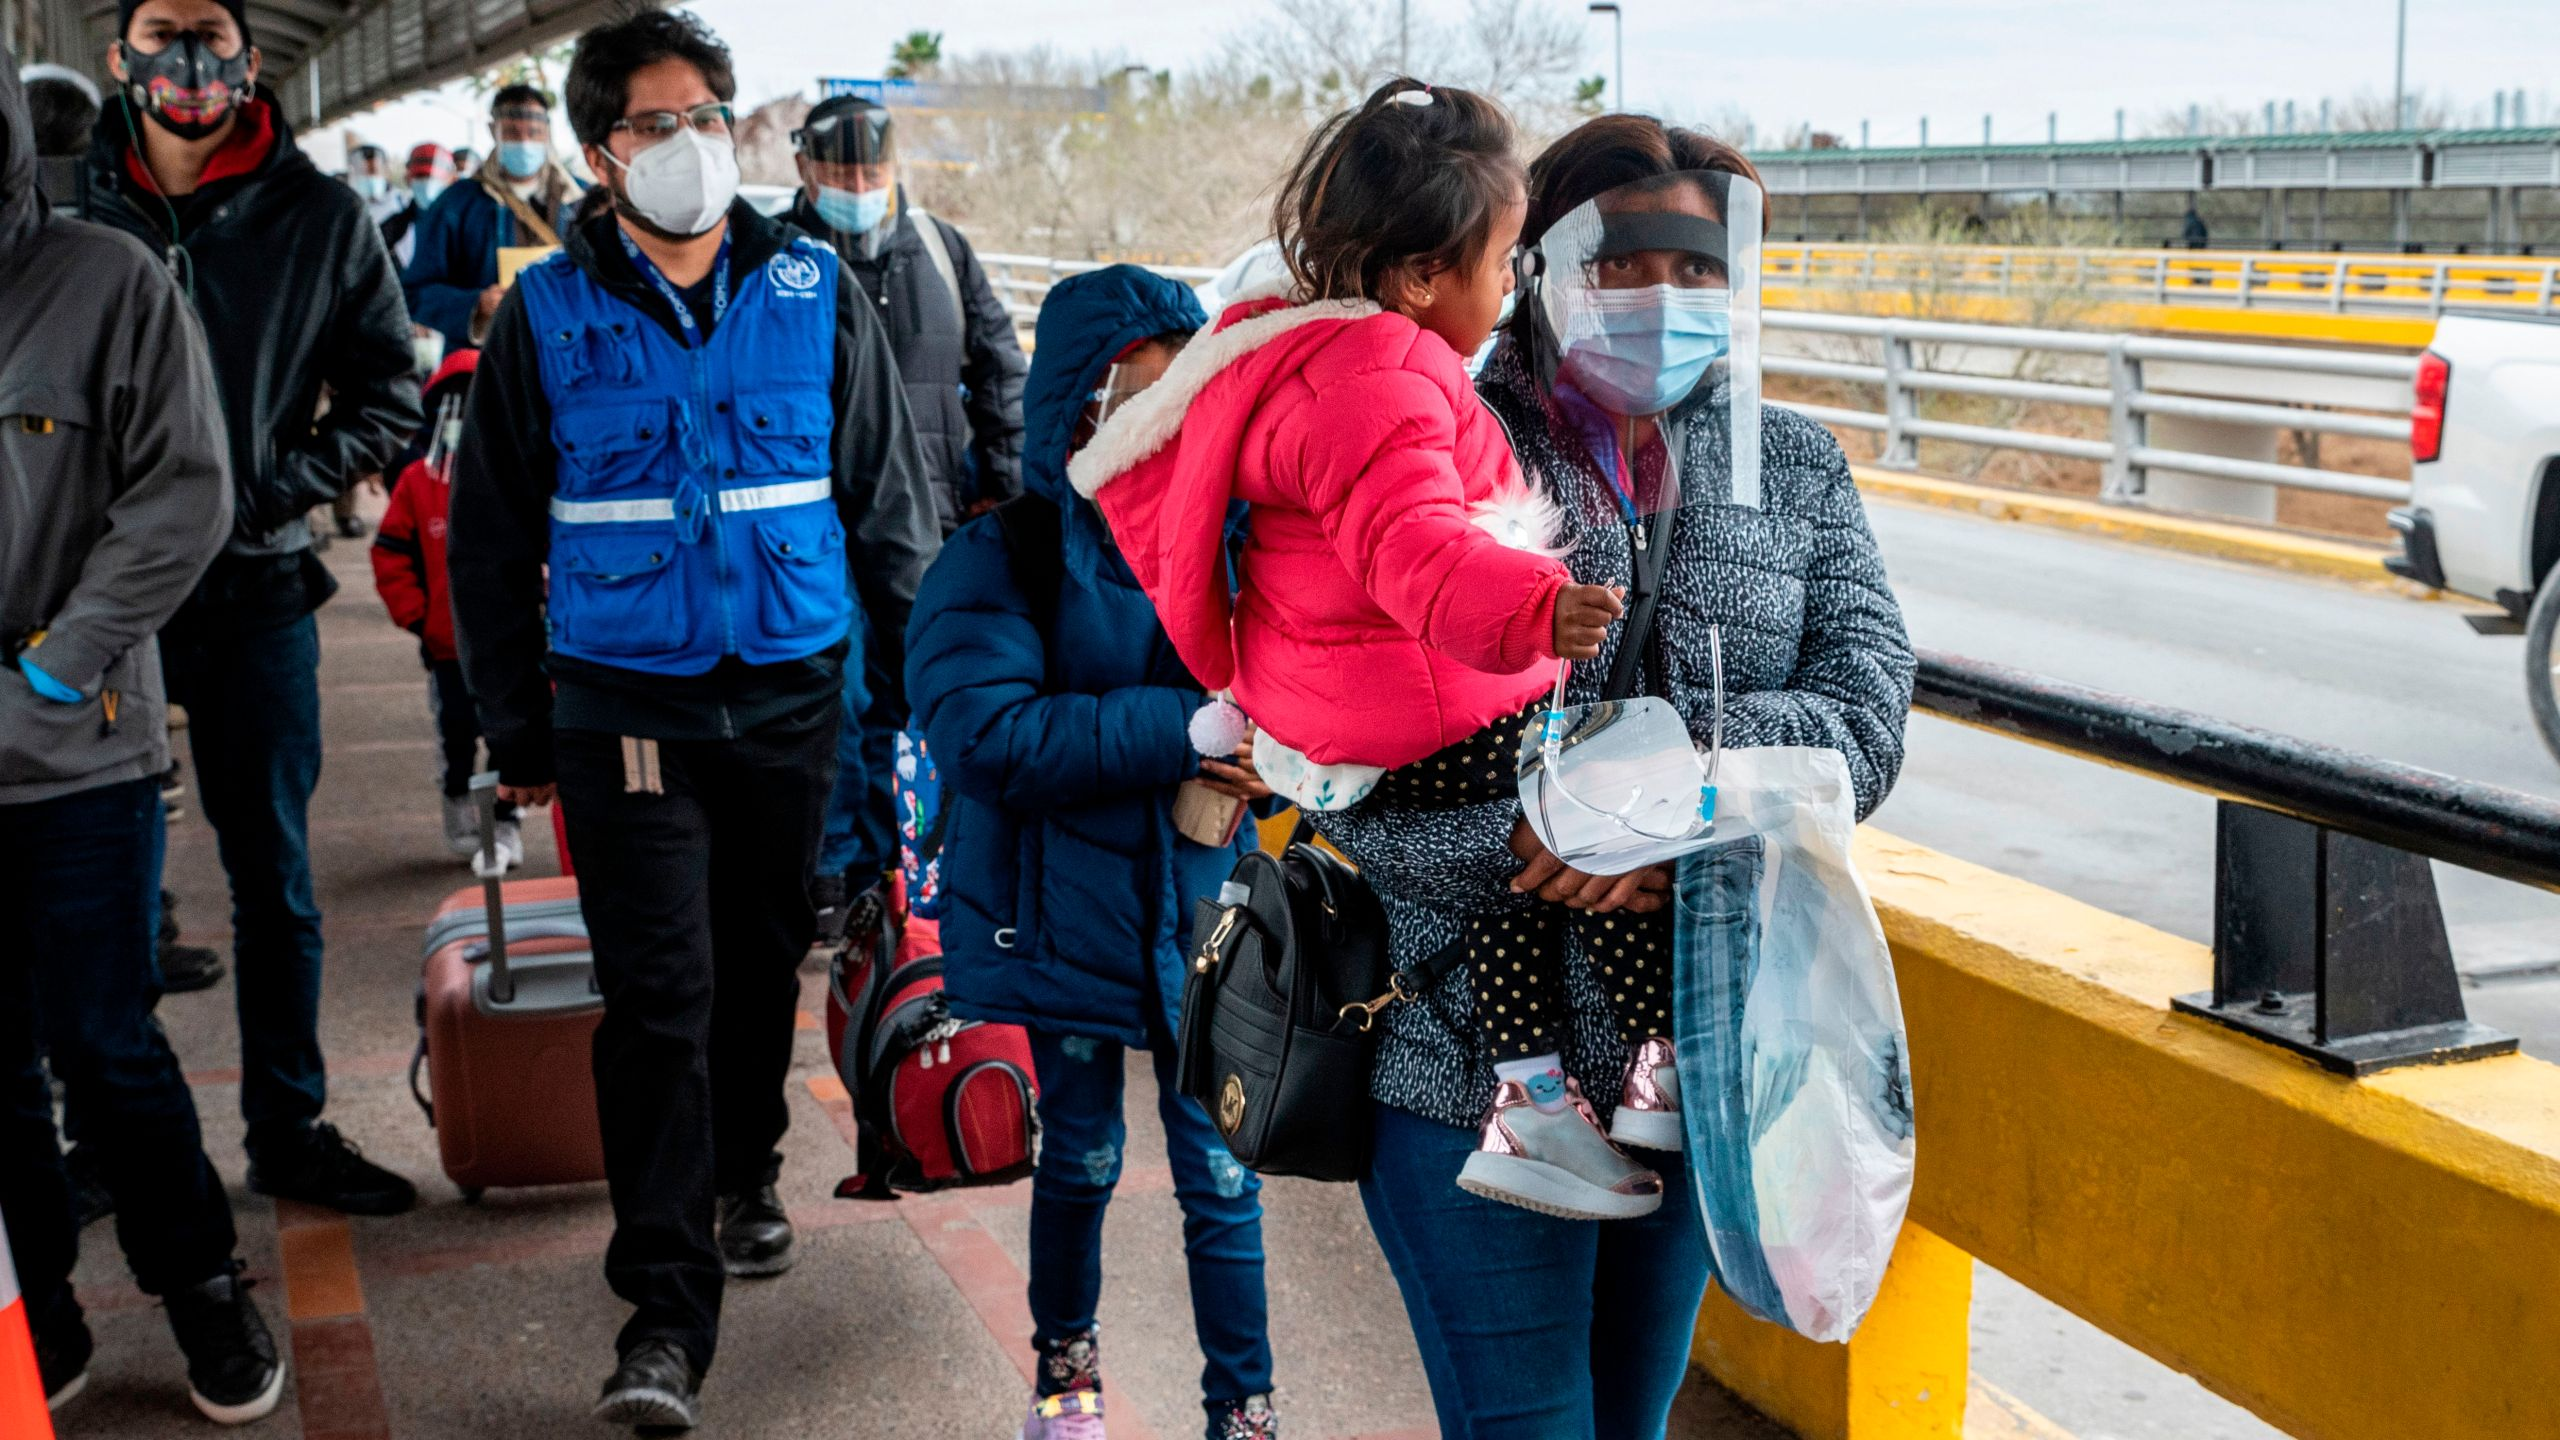 A migrant family approaches the US border on Gateway International Bridge in Brownsville, Texas on March 2, 2021. (SERGIO FLORES/AFP via Getty Images)